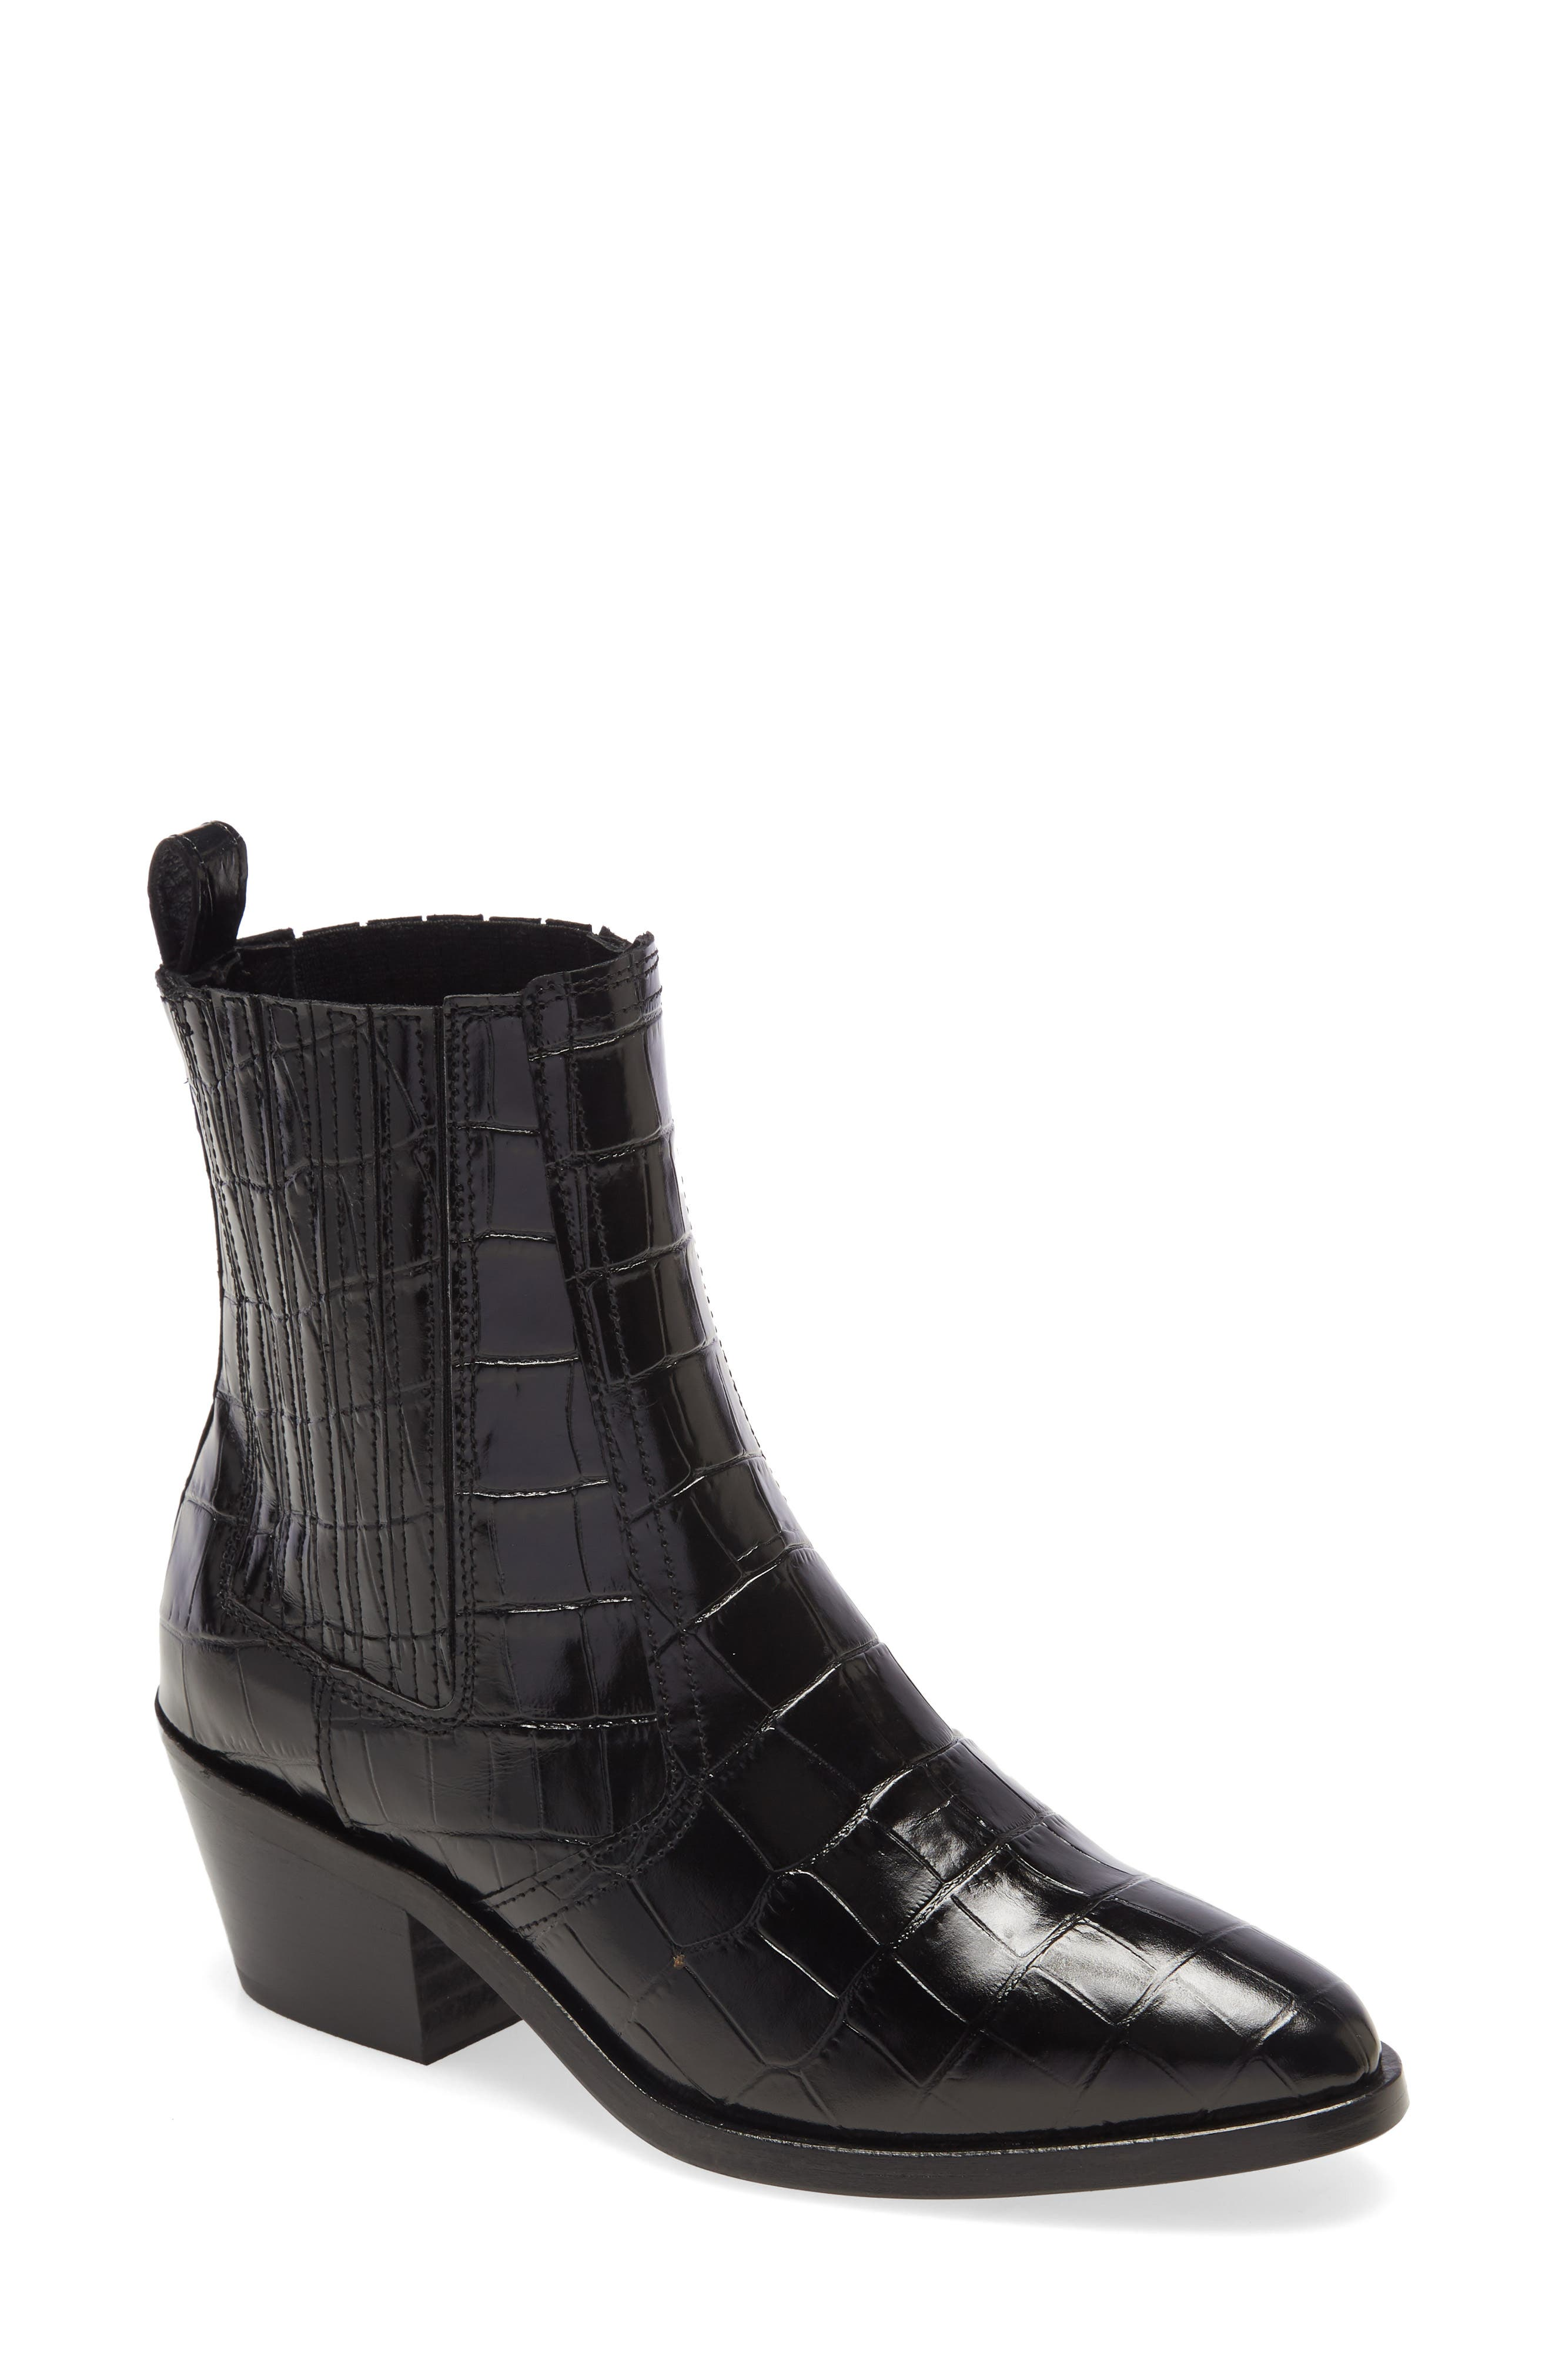 This sizzling boot makes a real point with its sinewy construction, supple leather and urban (with a dash of Western) attitude. Style Name: Allsaints Miriam Bootie (Women). Style Number: 5984252. Available in stores.